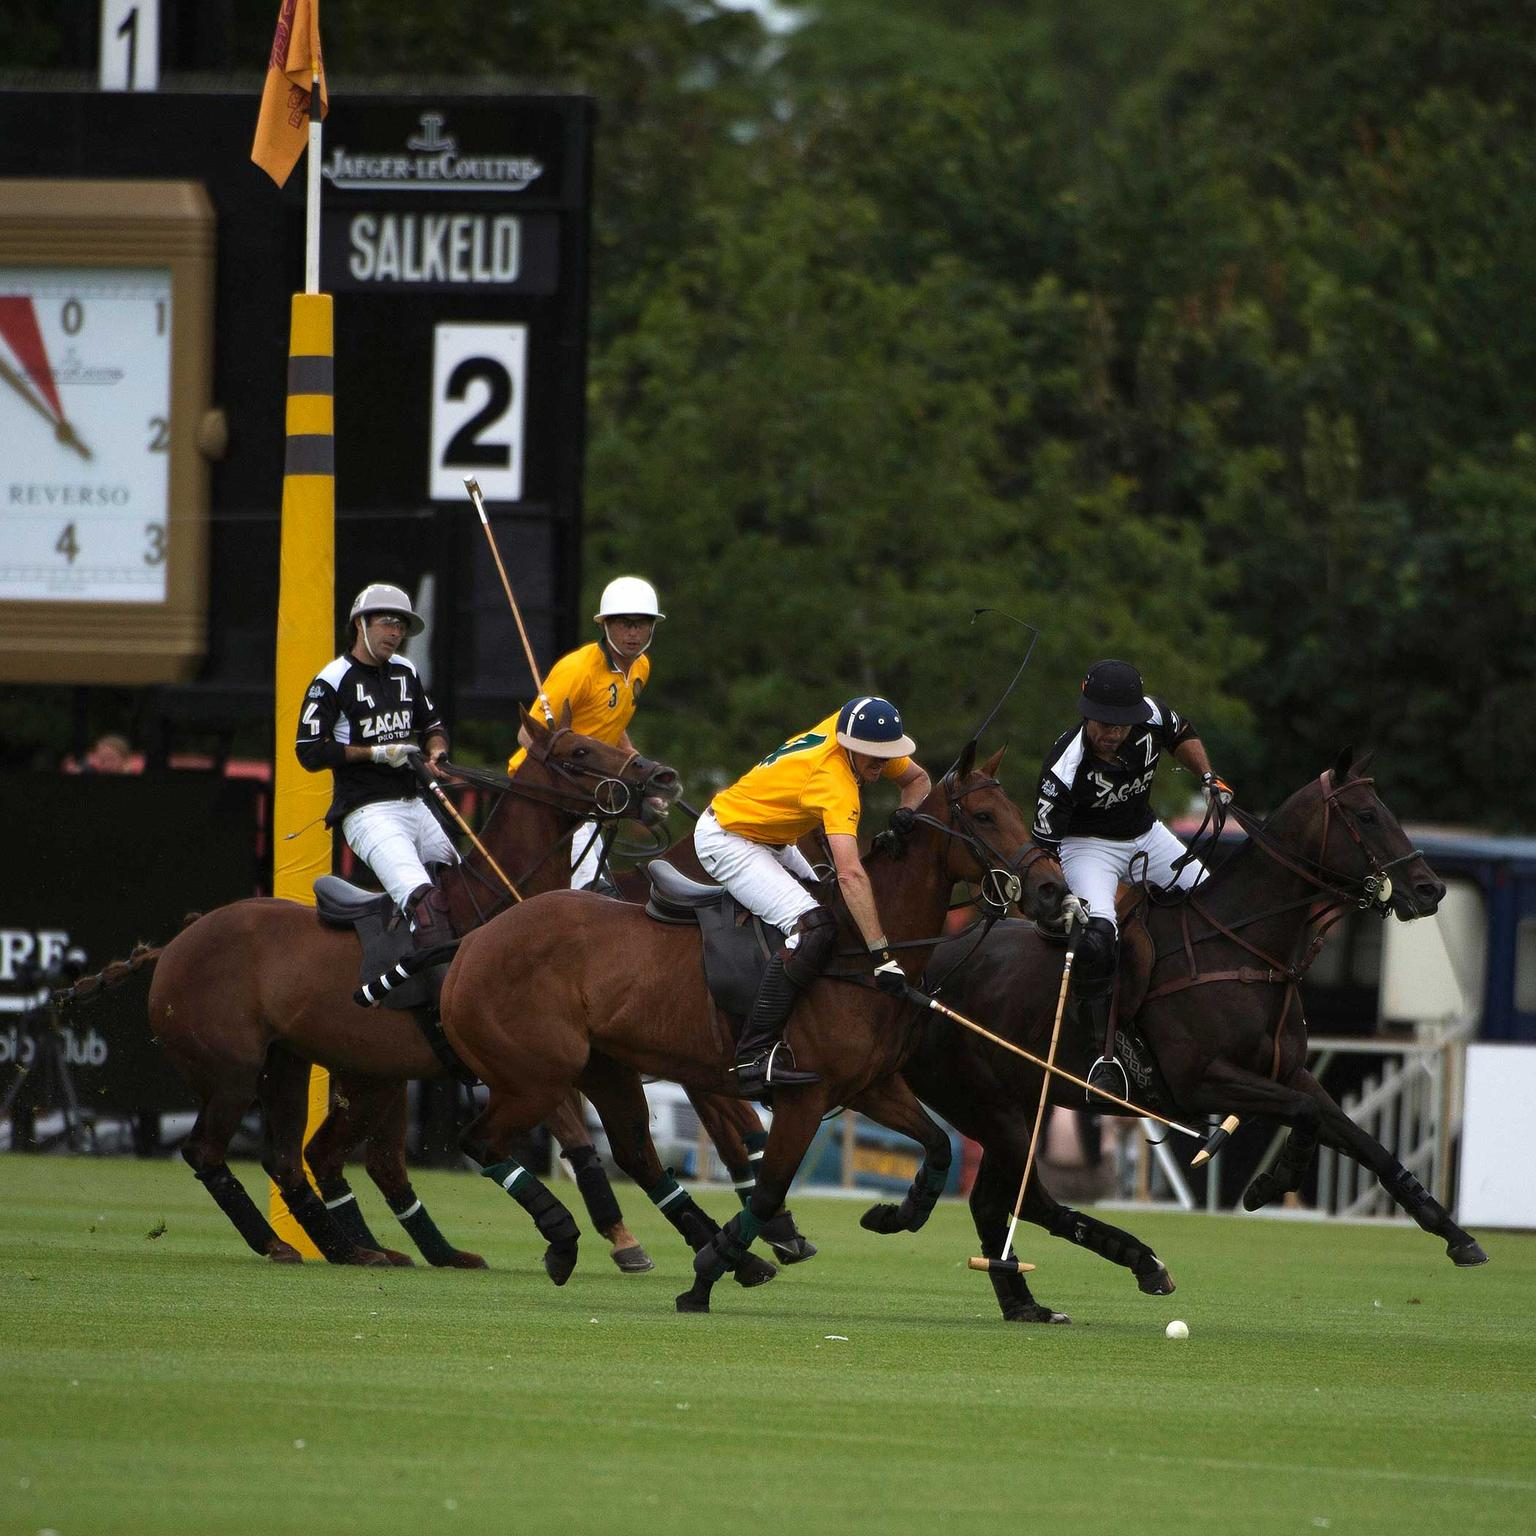 Luke Tomlinson defending Jaeger LeCoultre Gold Cup 2015 (copyright Vanessa Taylor)